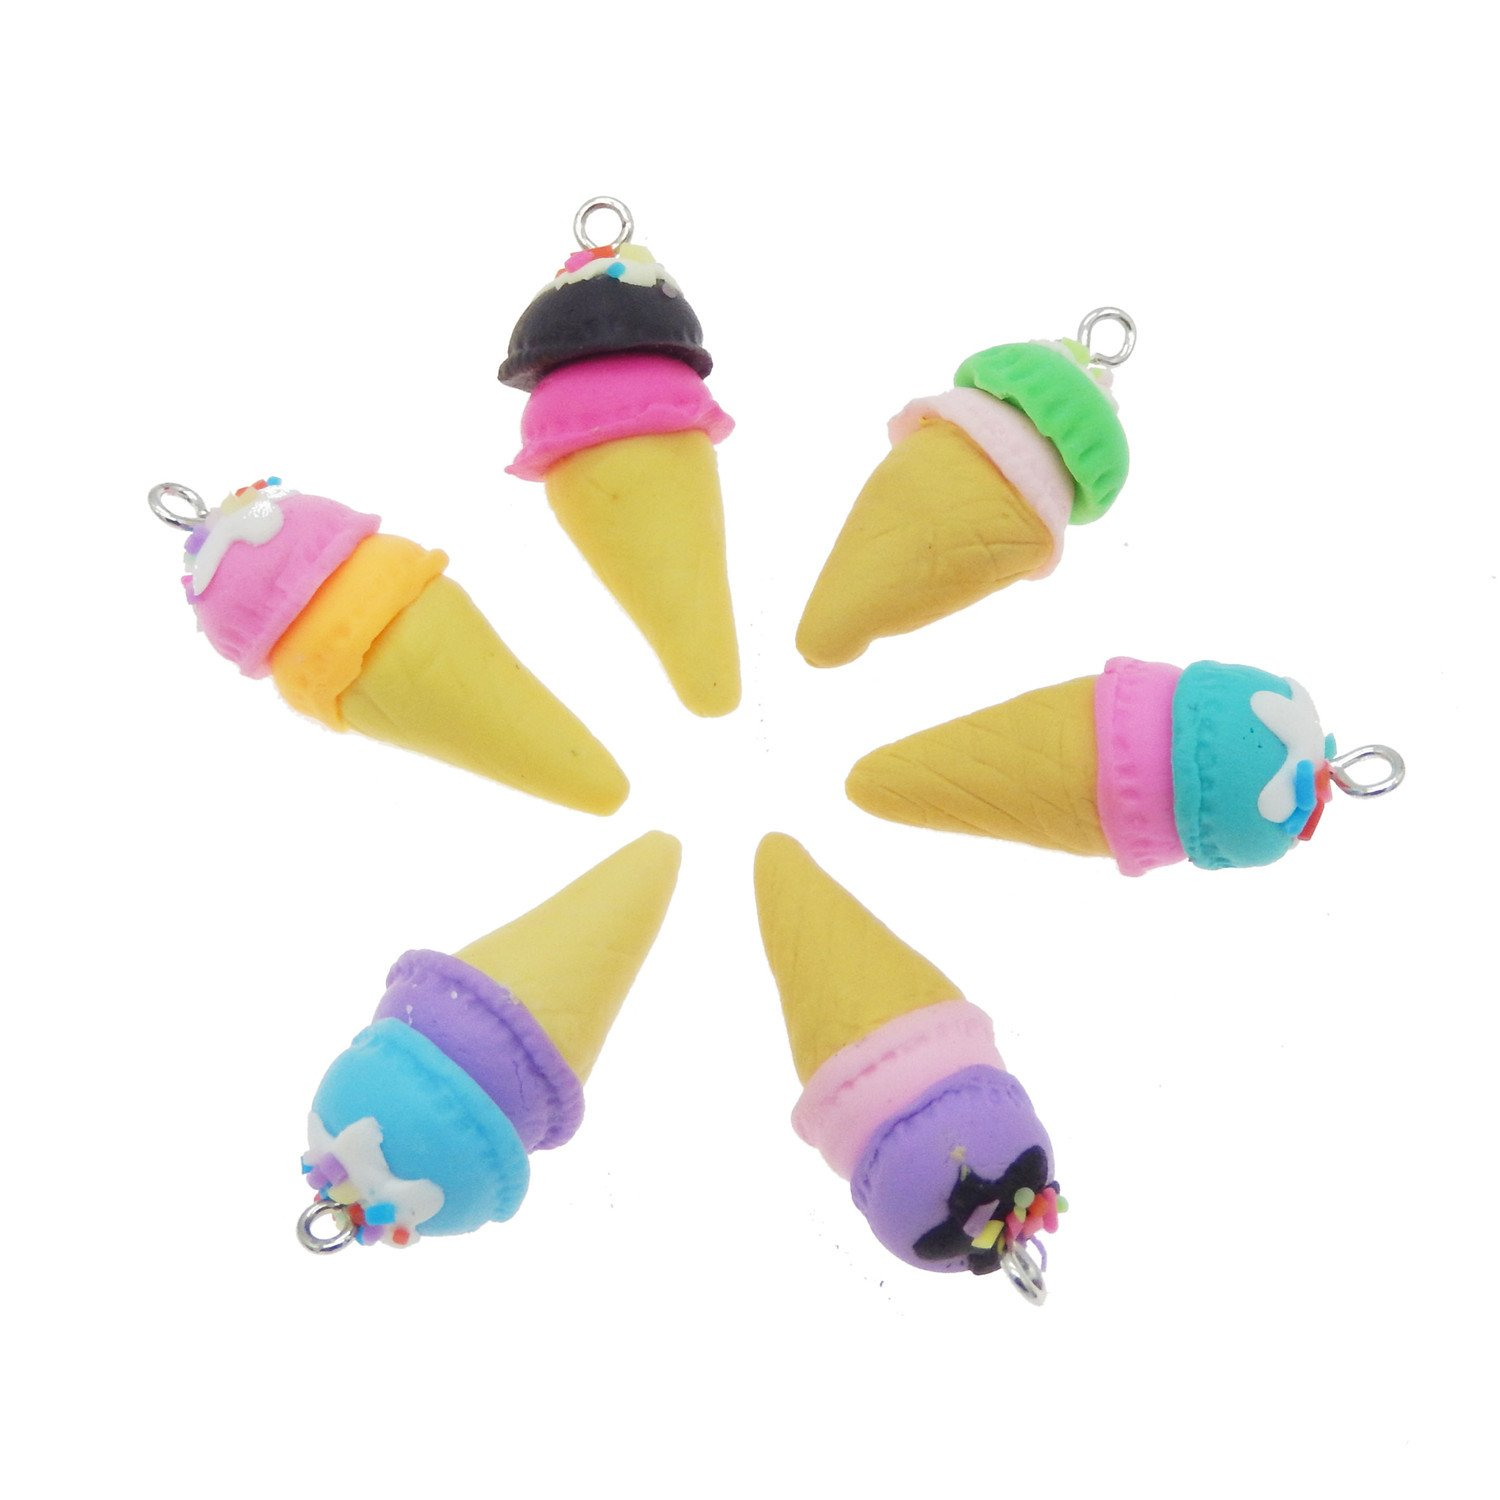 GraceAngie Handmade 20pcs Mix Polymer Clay Cute Ice Cream Charms Pendant for DIY Keychain Necklace Bracelet Jewelry Making, 36x16mm